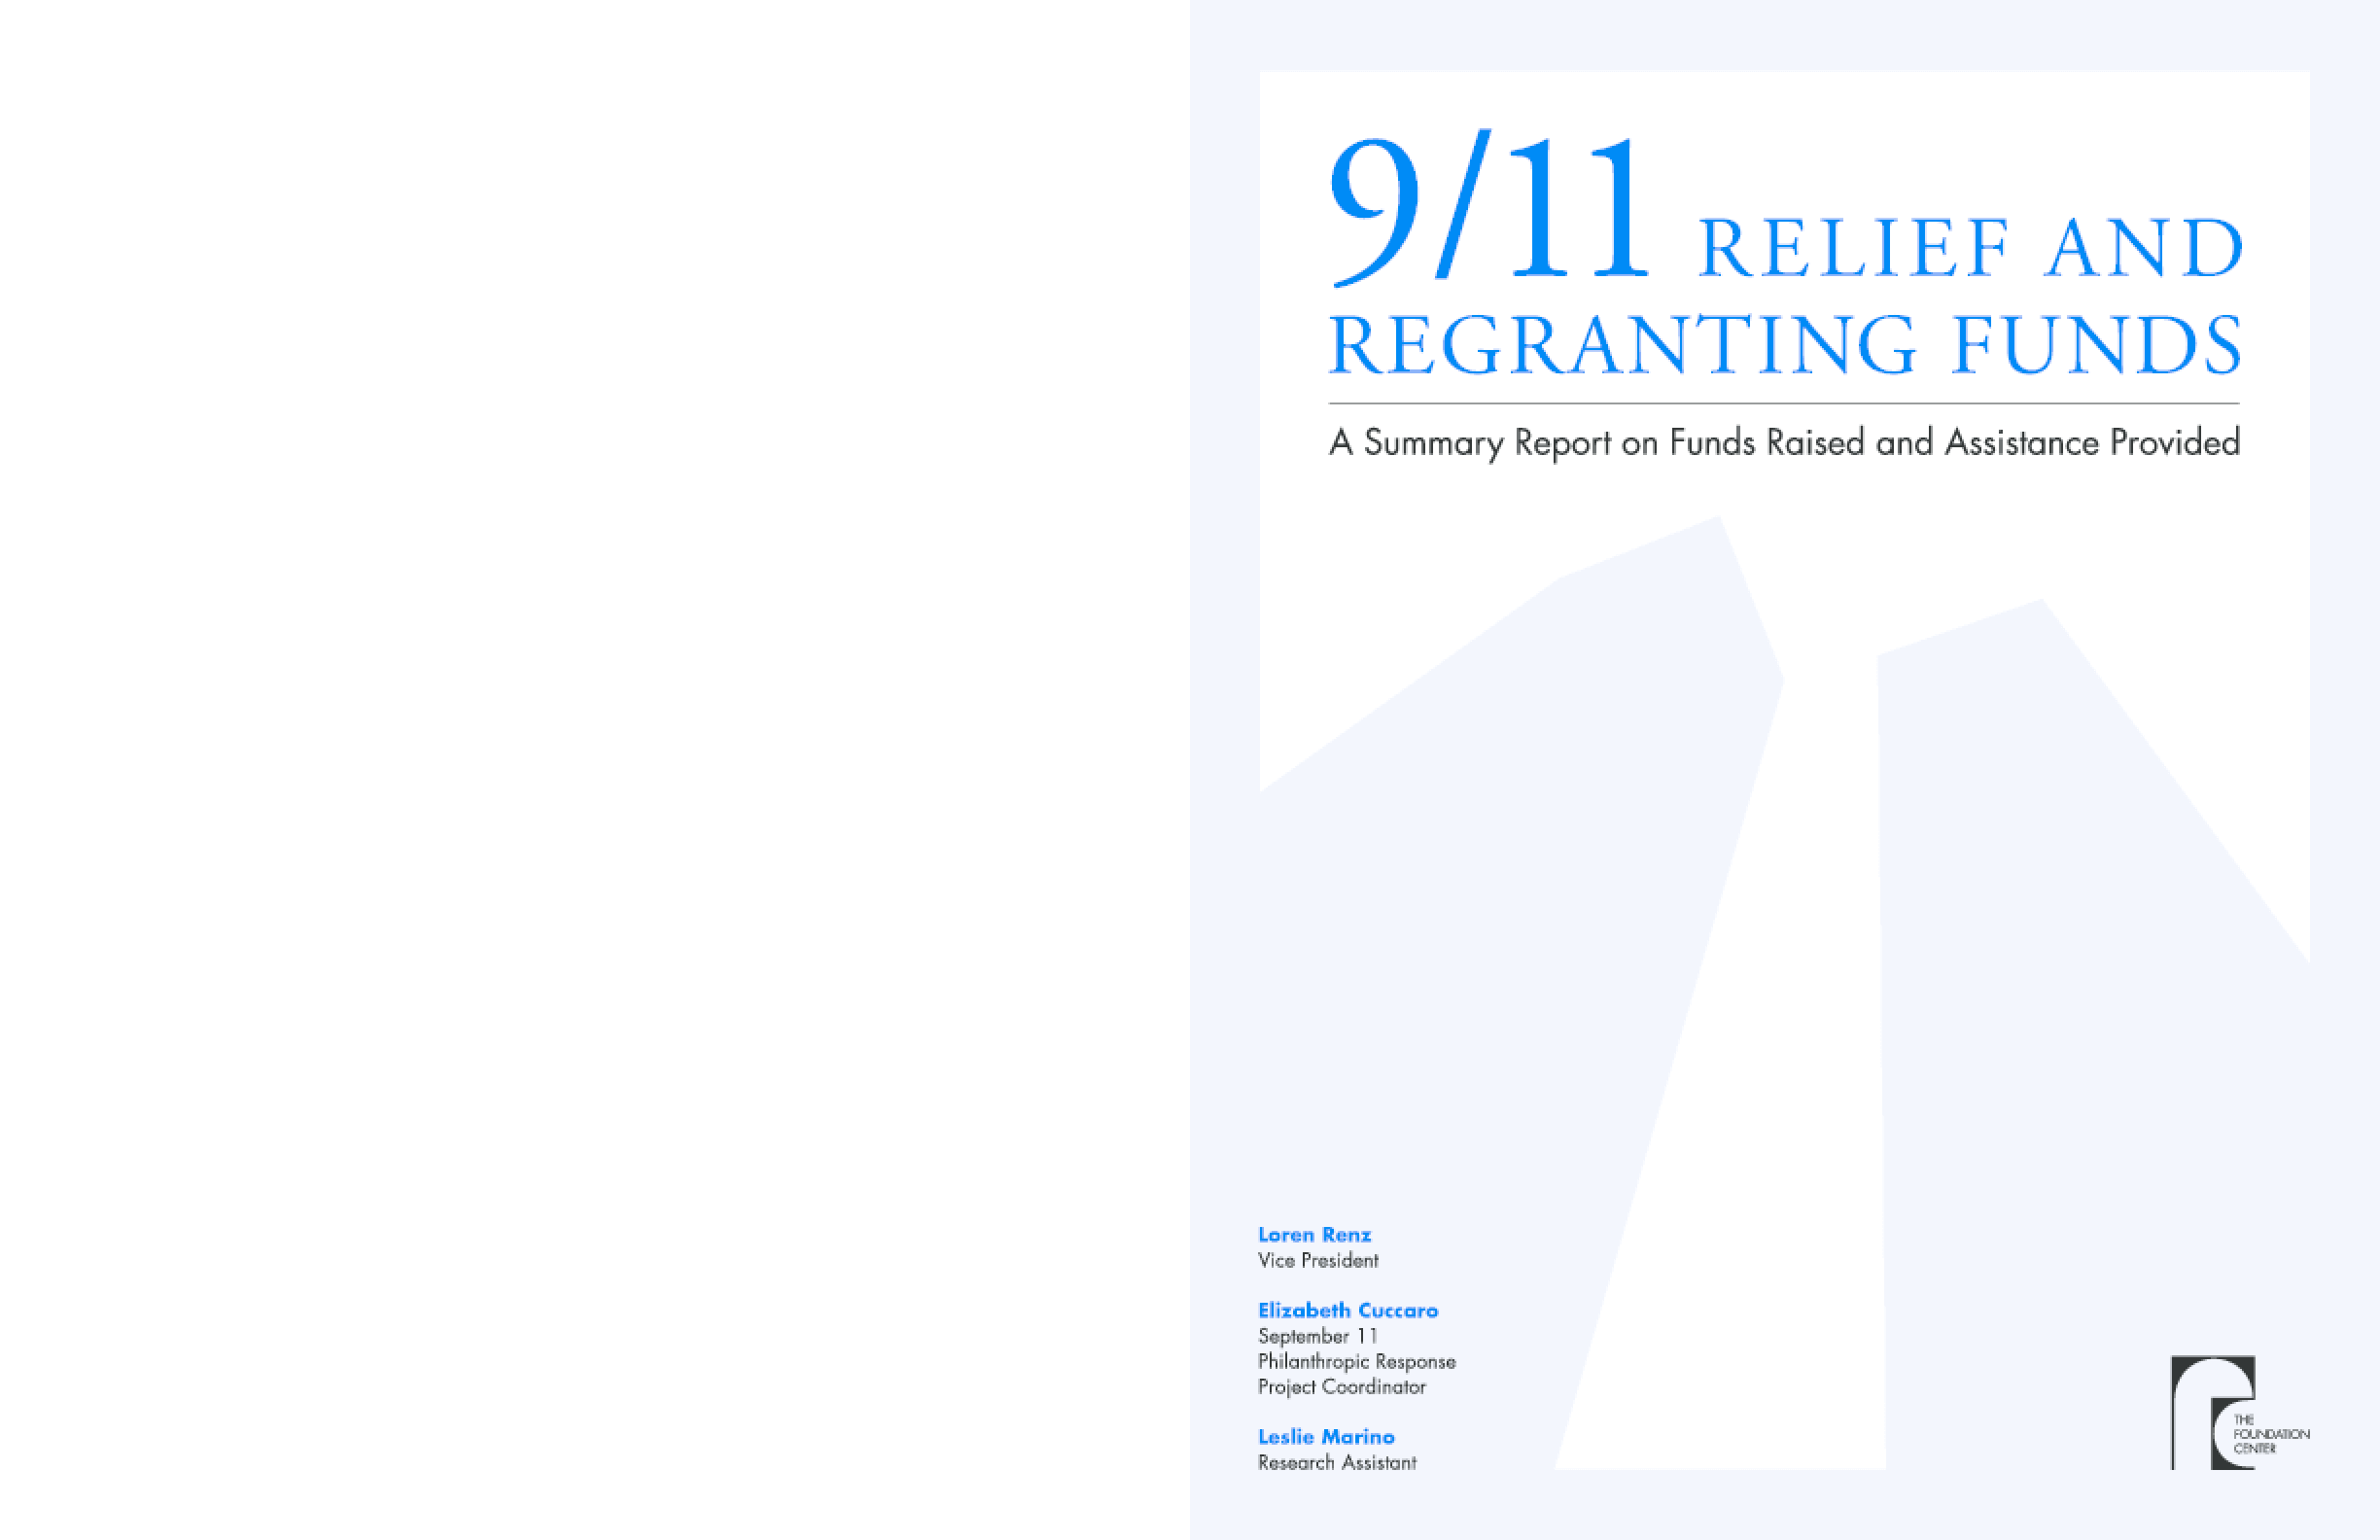 9/11 Relief and Regranting Funds